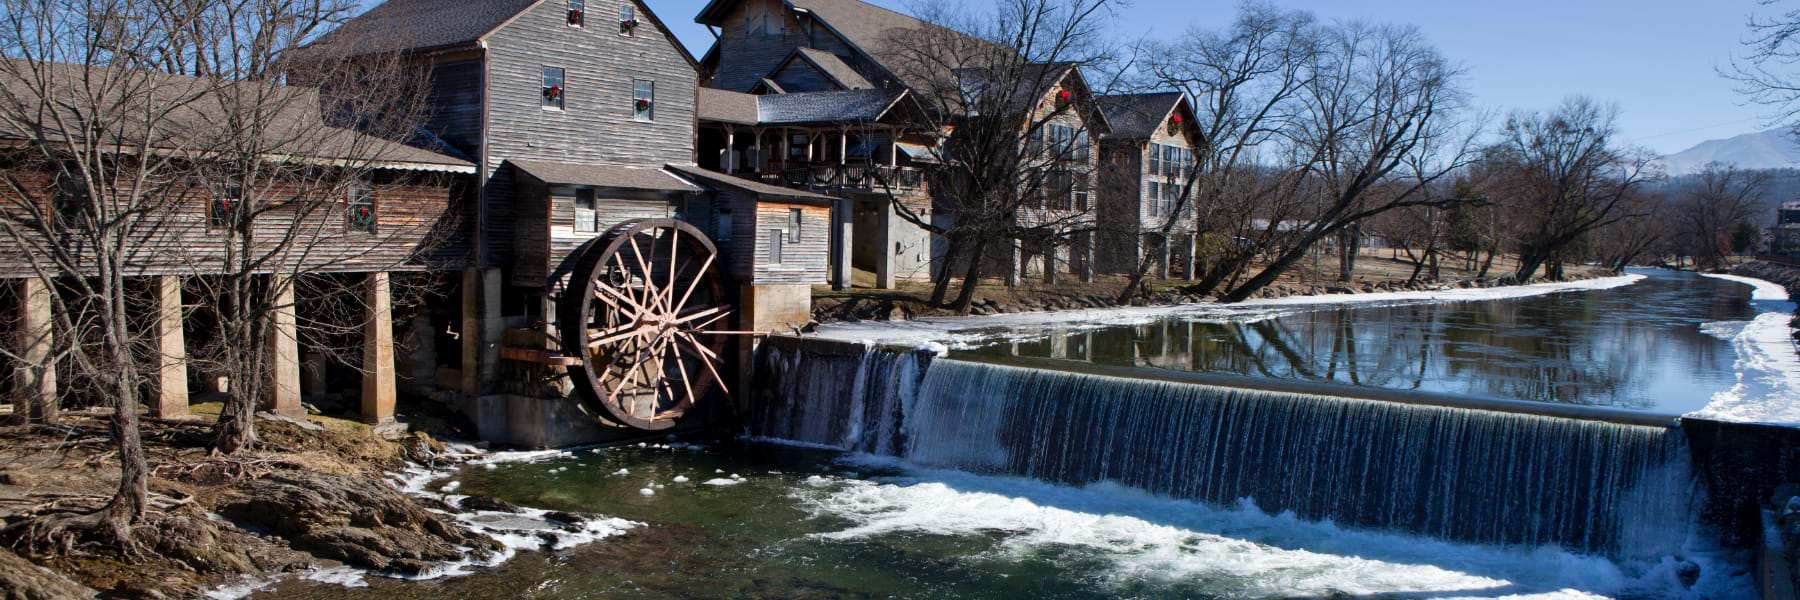 The Mills in Pigeon Forge